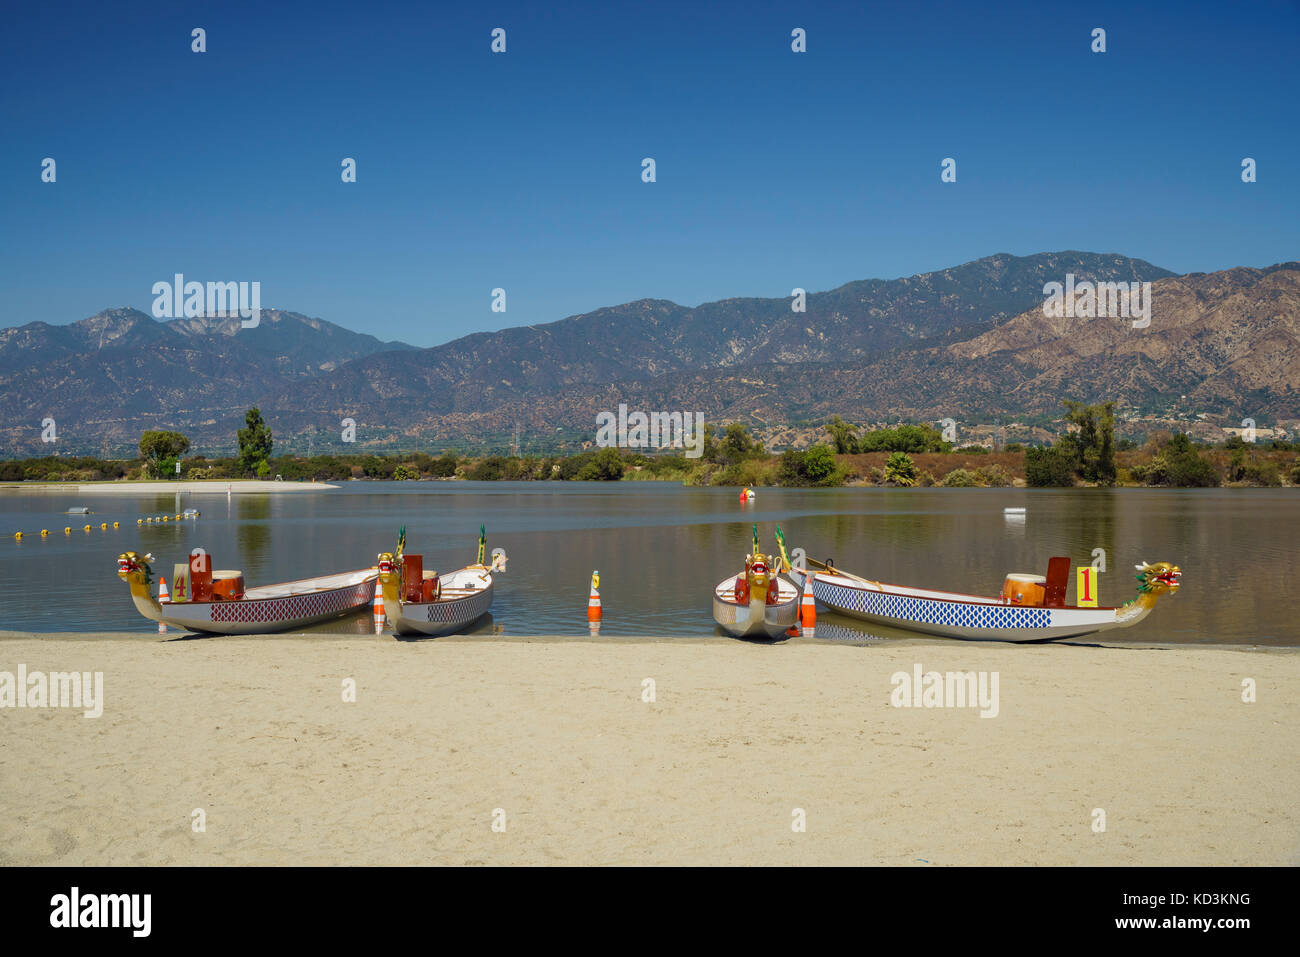 Dragon Boat At Santa Fe Dam Recreation Area Los Angeles County Stock Photo Alamy